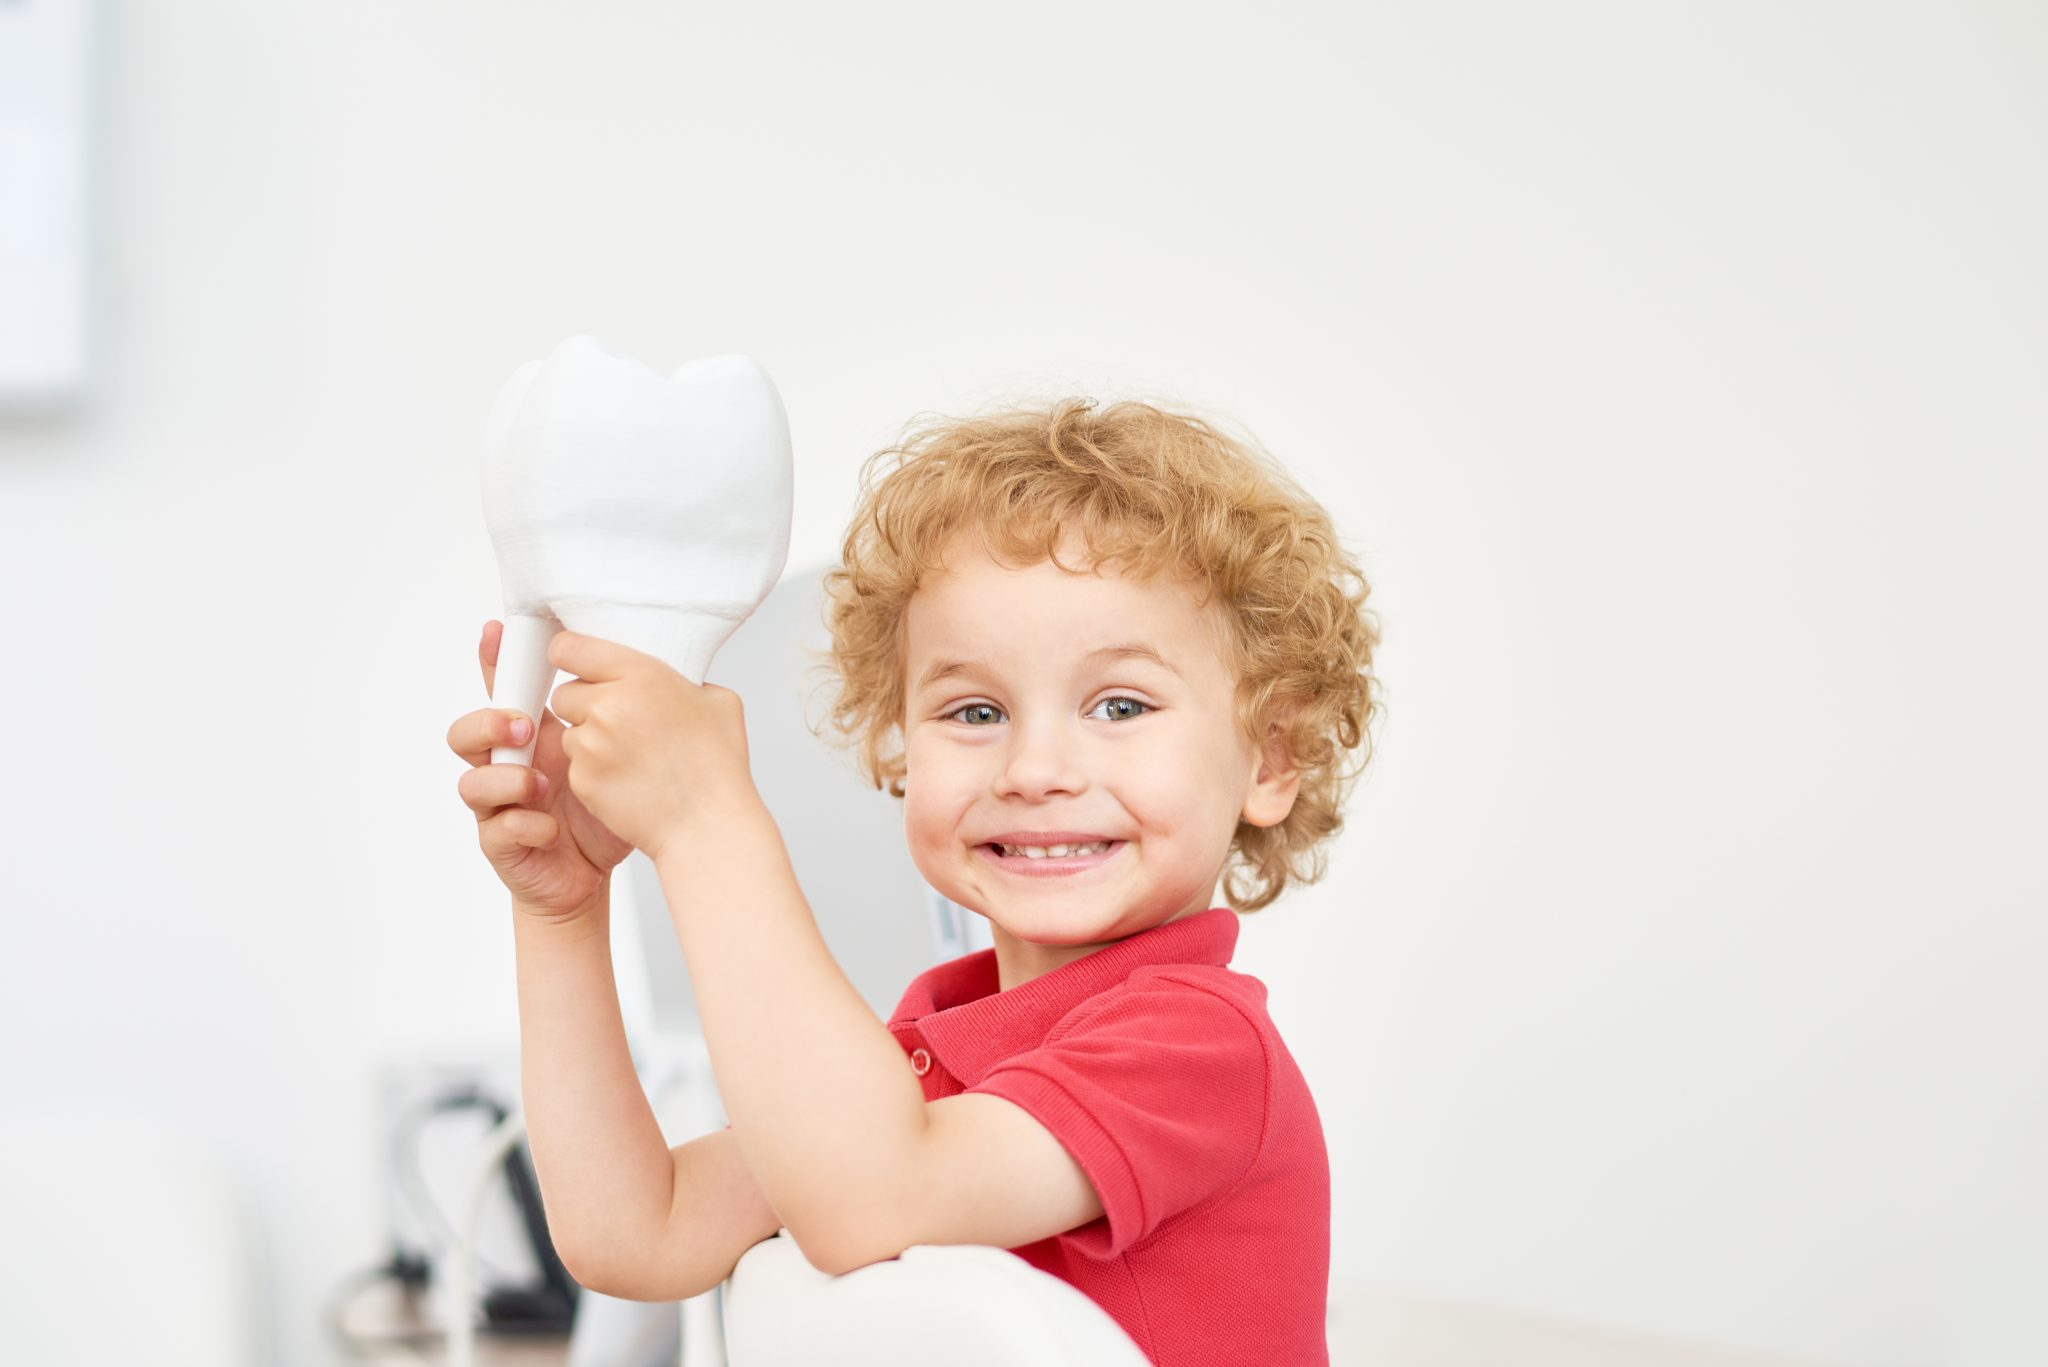 Head and shoulders portrait of cute toddler looking at camera while playing with tooth model at dental office, blurred background